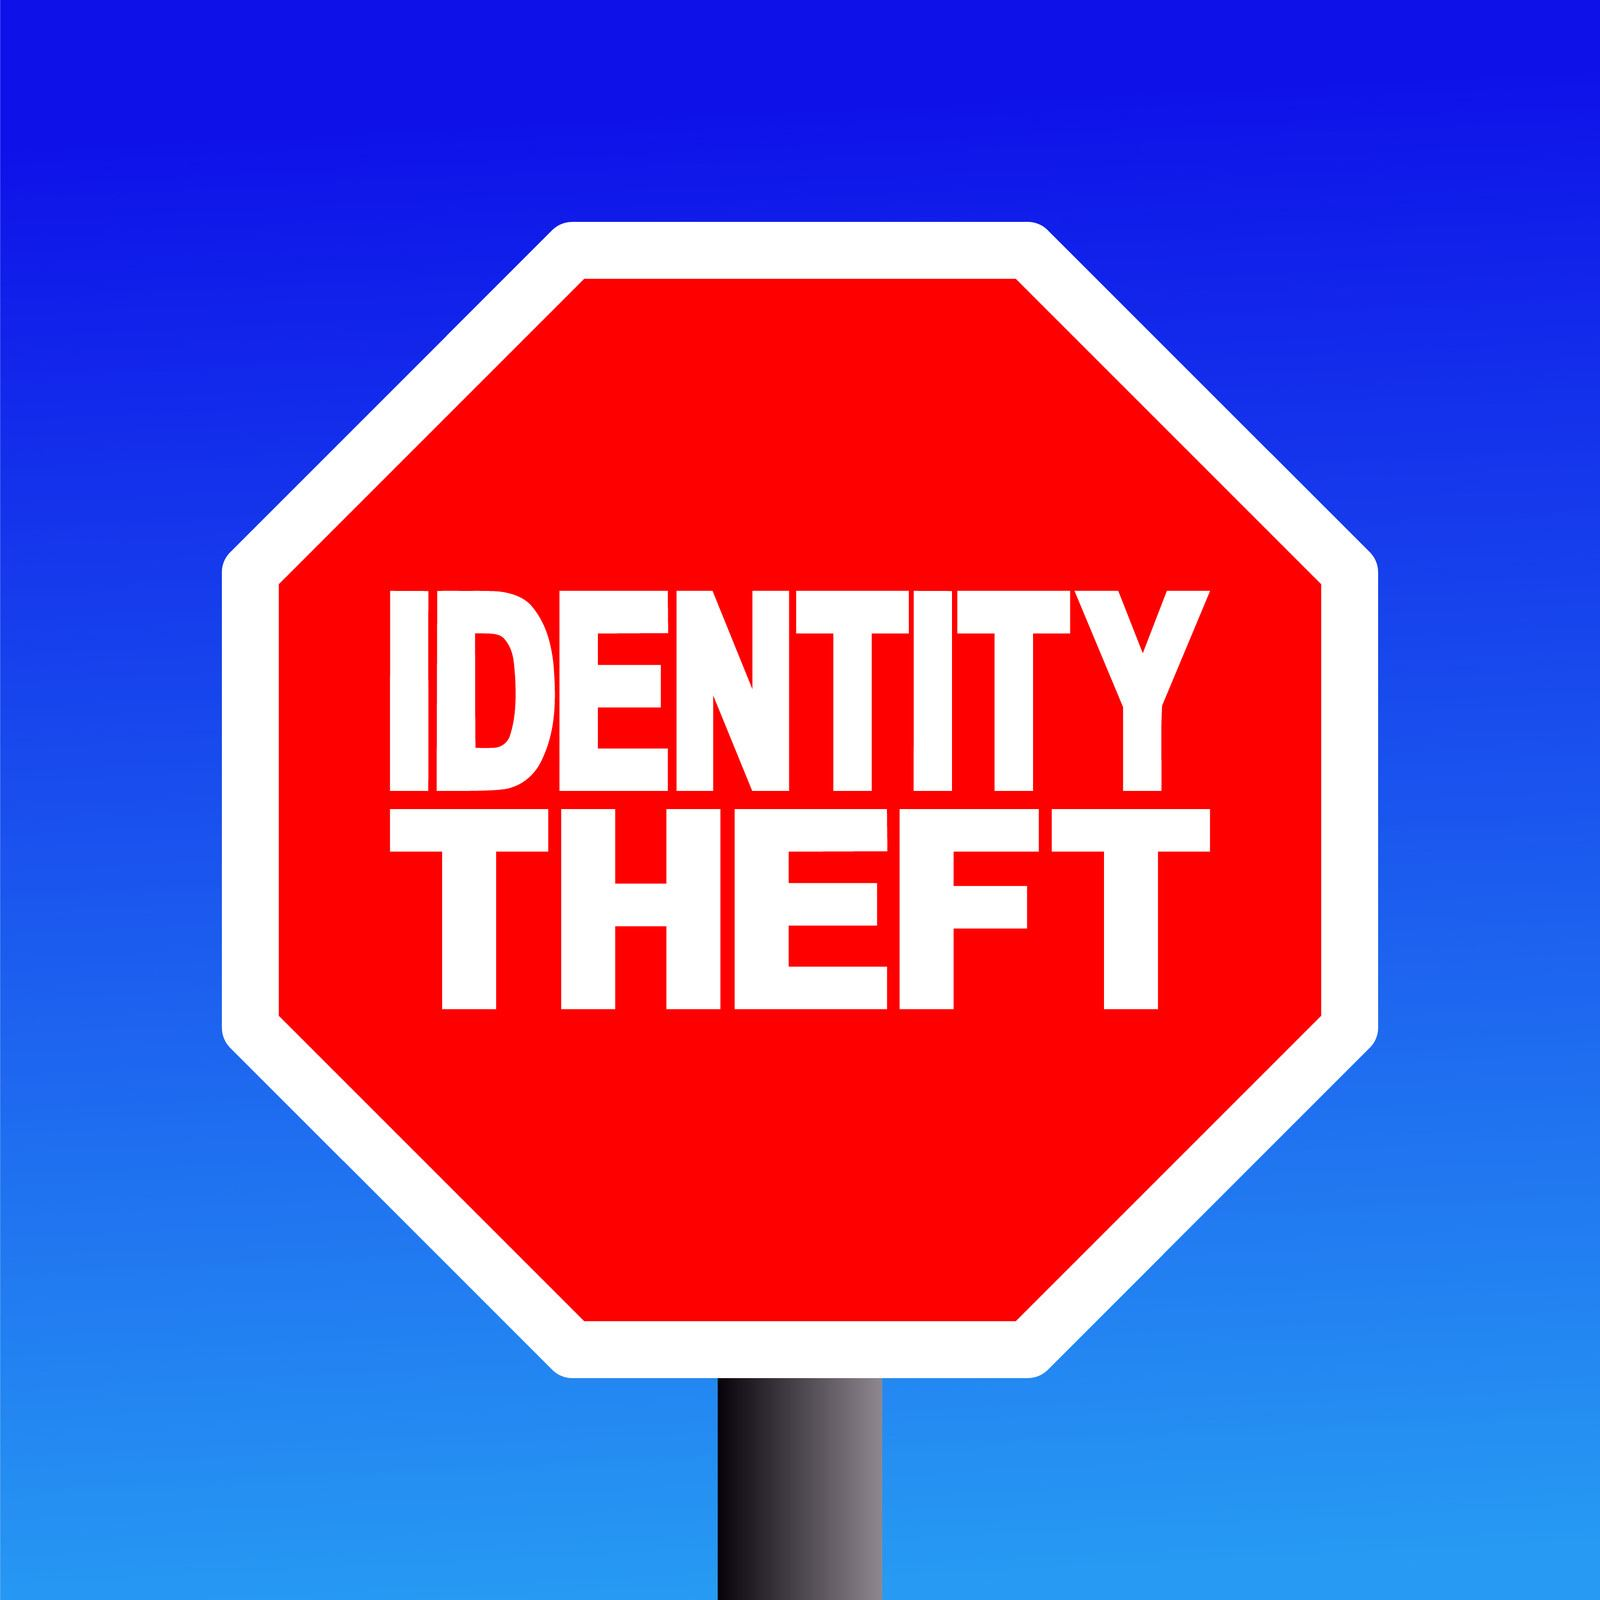 id-theft[1] Opens in new window